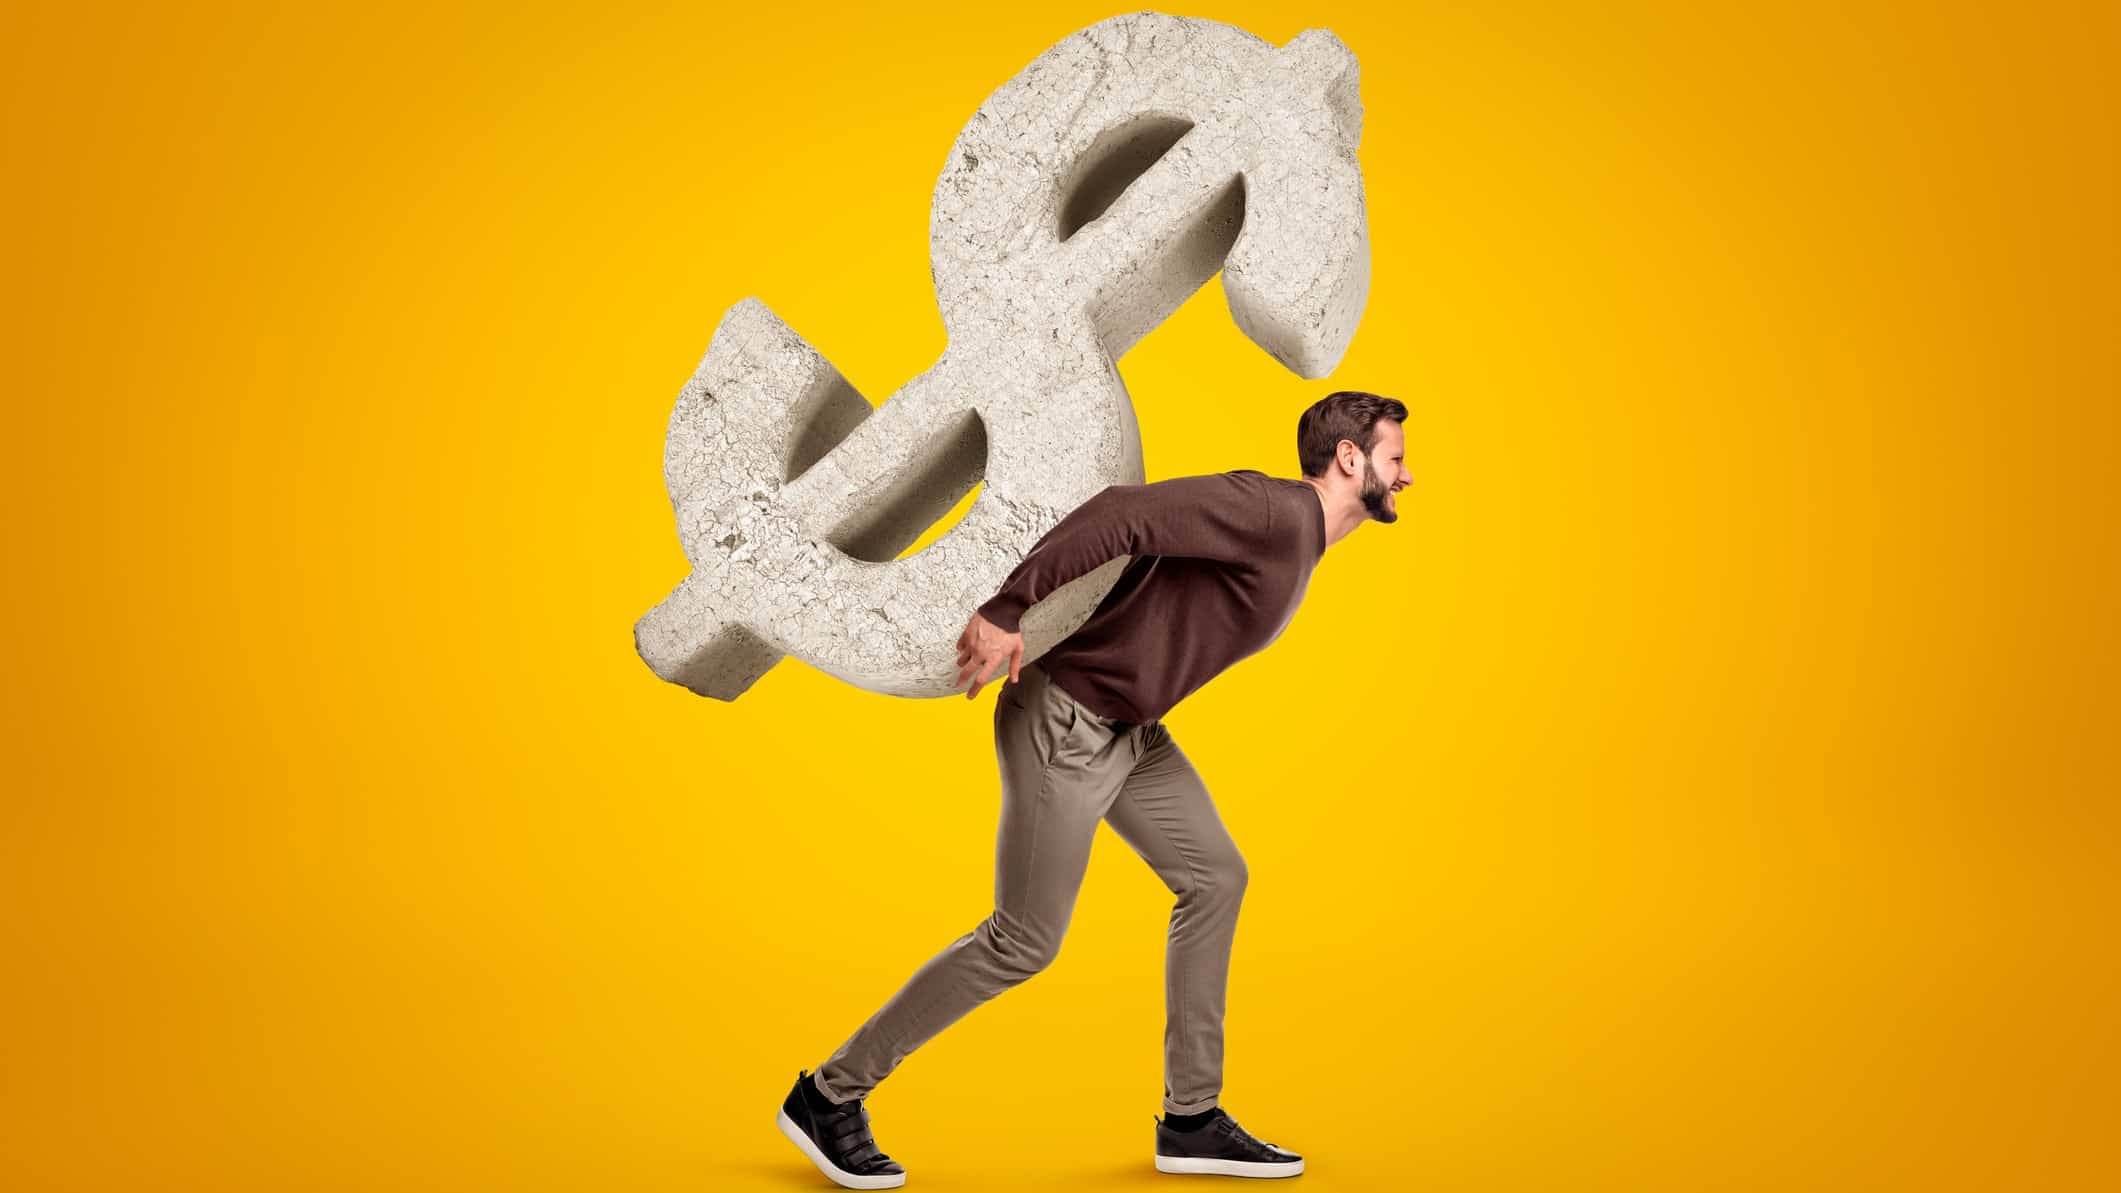 man carrying large dollar sign on his back representing high P/E ratio